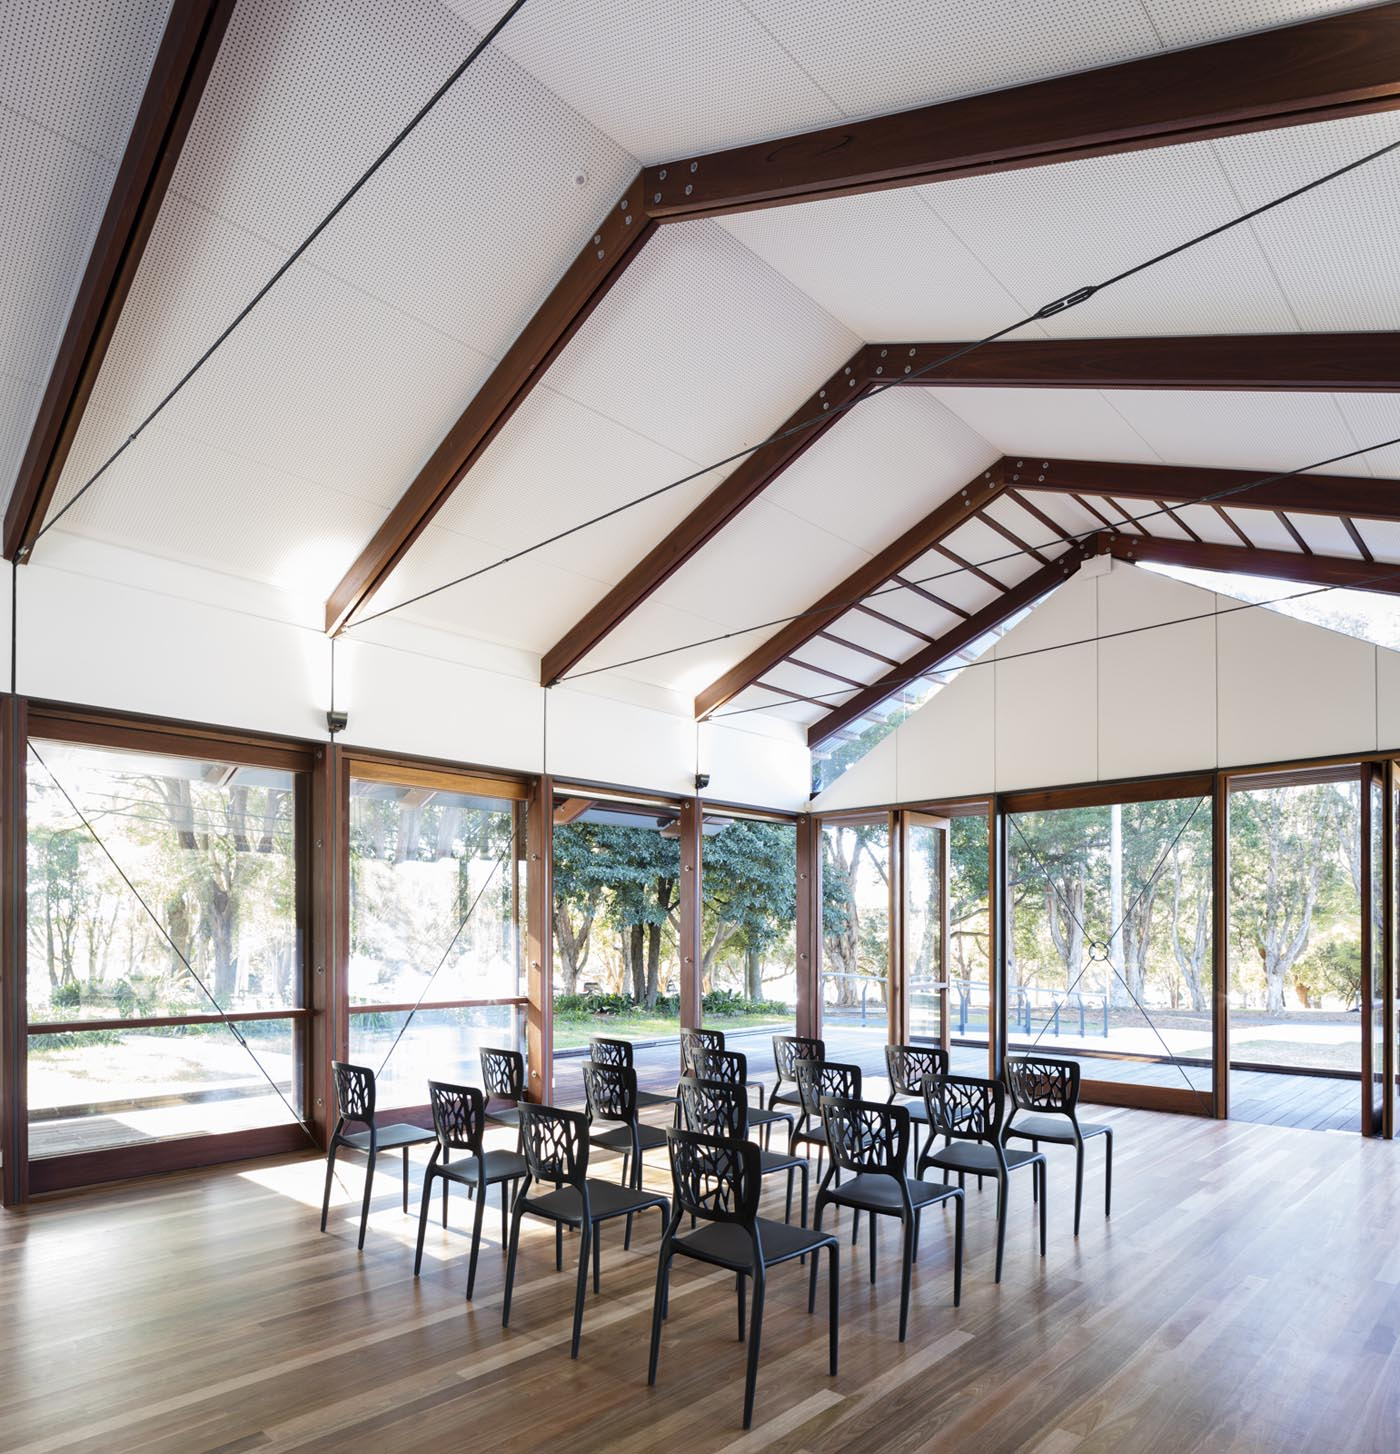 Cabarita Park Conservatory by award winning public architectural firm Sam Crawford Architects. Removable furniture allow flexible configuration of the function room.